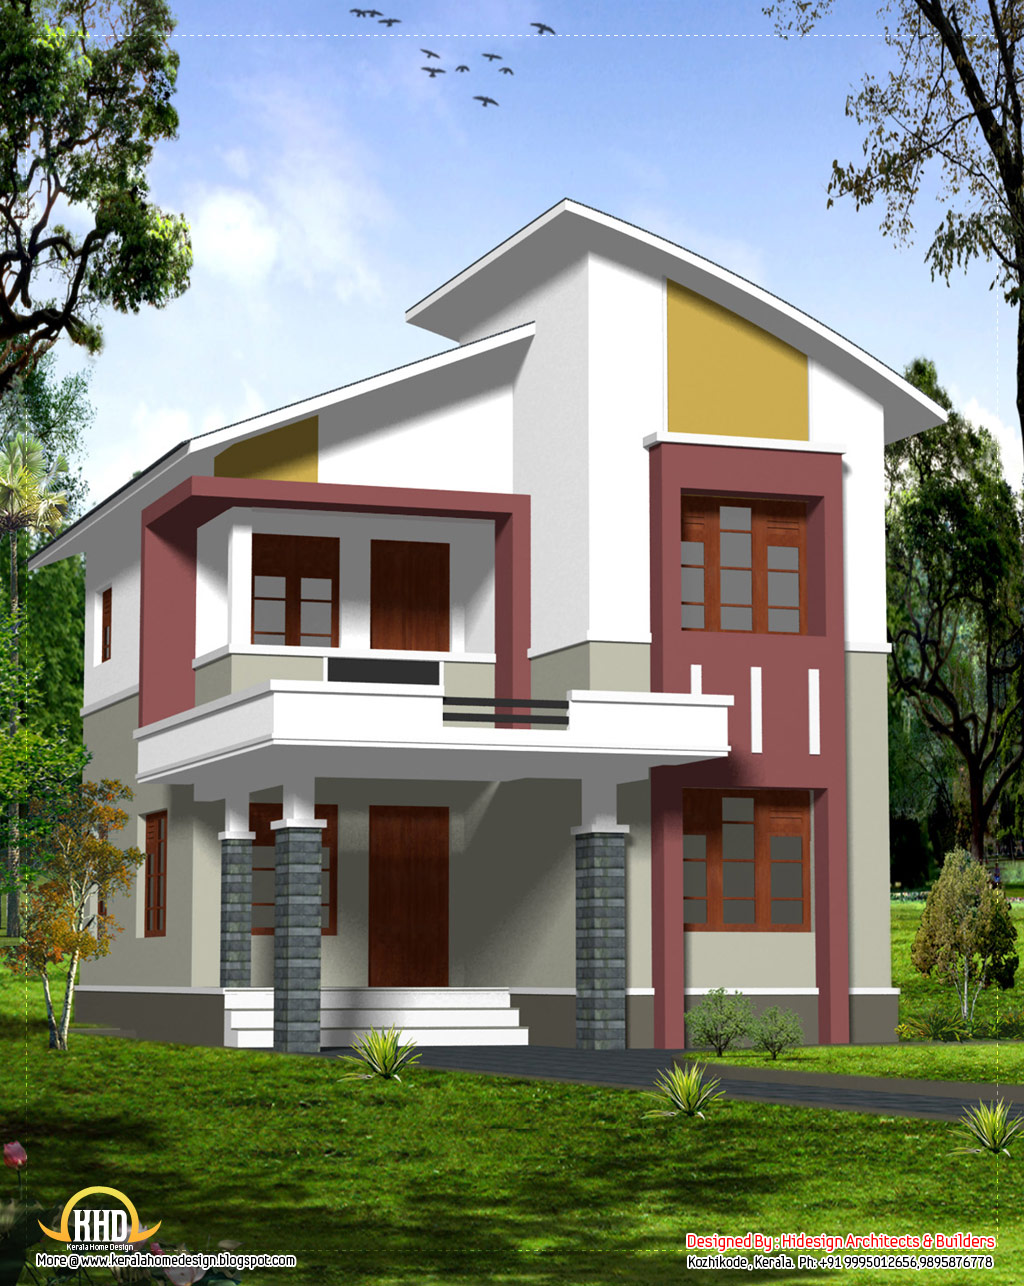 Budget home design 2140 sq ft kerala home design and for Home pland